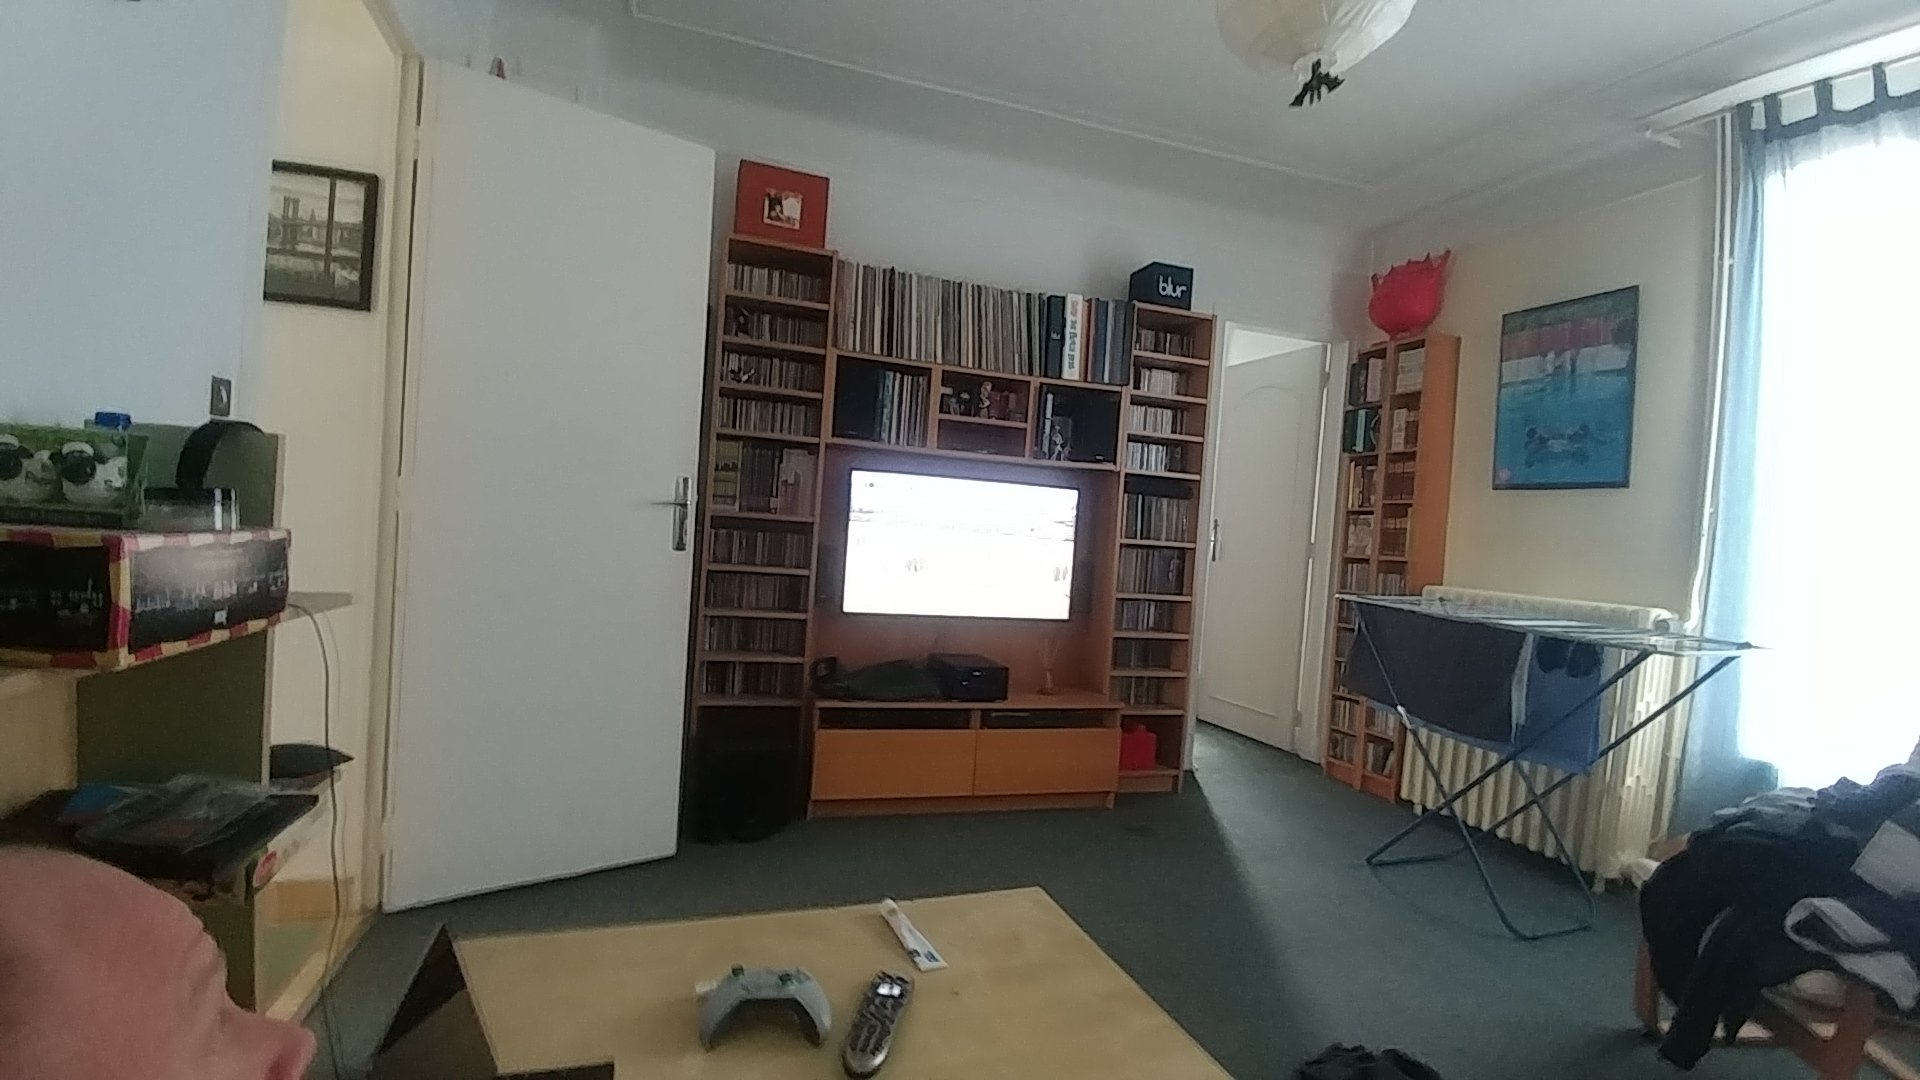 French holiday today, watching the games from the couch #ebuc2019 https://t.co/urSEbSSHcK <a href='https://twitter.com/M_Rochette/status/1126038045134872577/photo/1' target='_blank'>See original »</a>